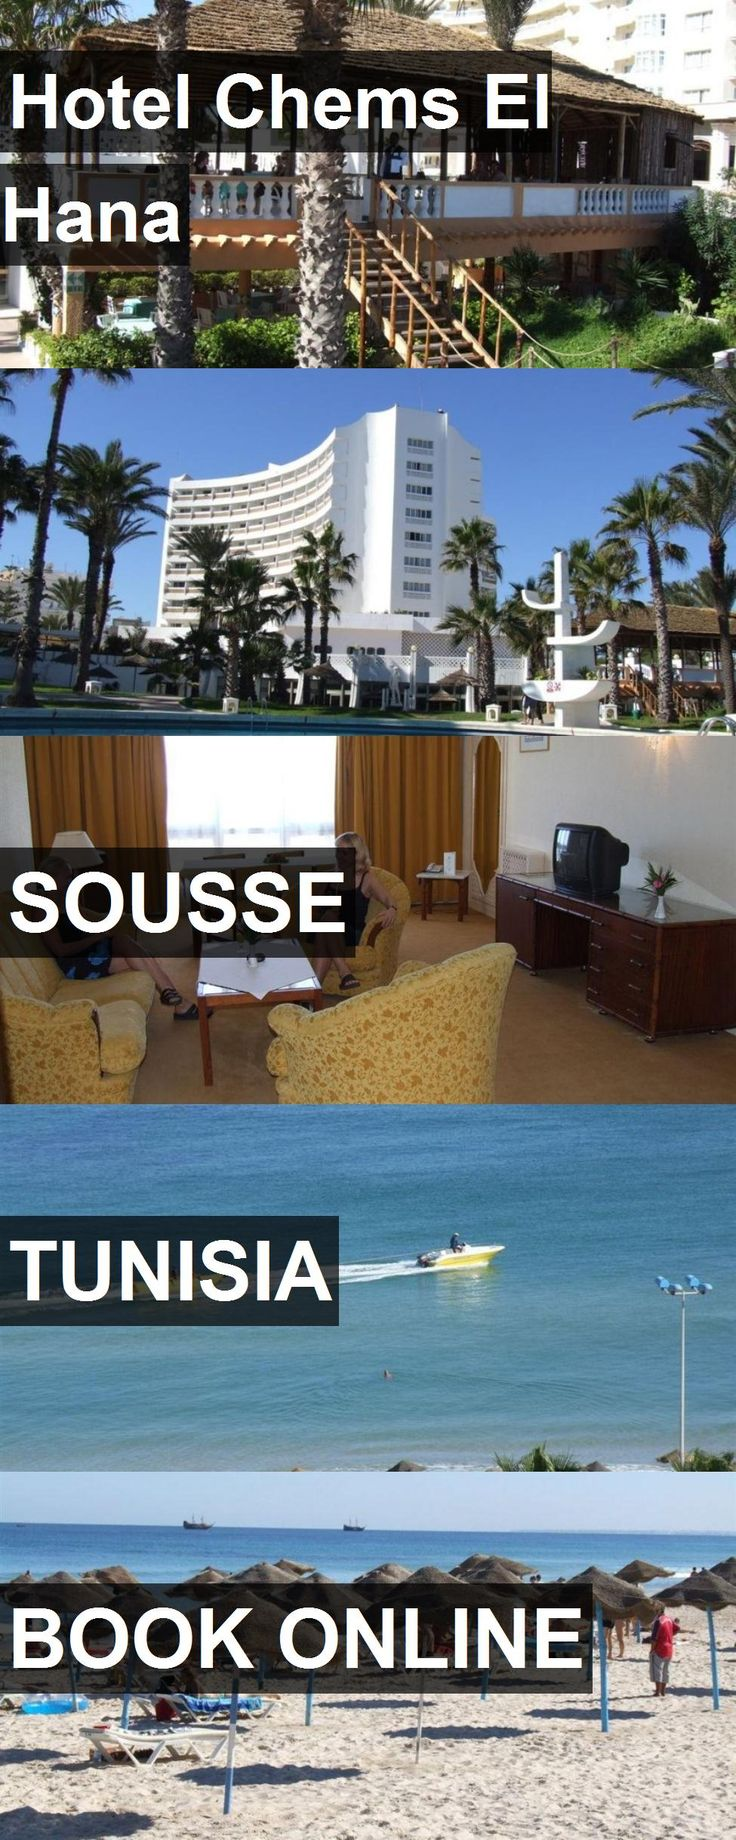 Hotel Chems El Hana in Sousse, Tunisia. For more information, photos, reviews and best prices please follow the link. #Tunisia #Sousse #travel #vacation #hotel